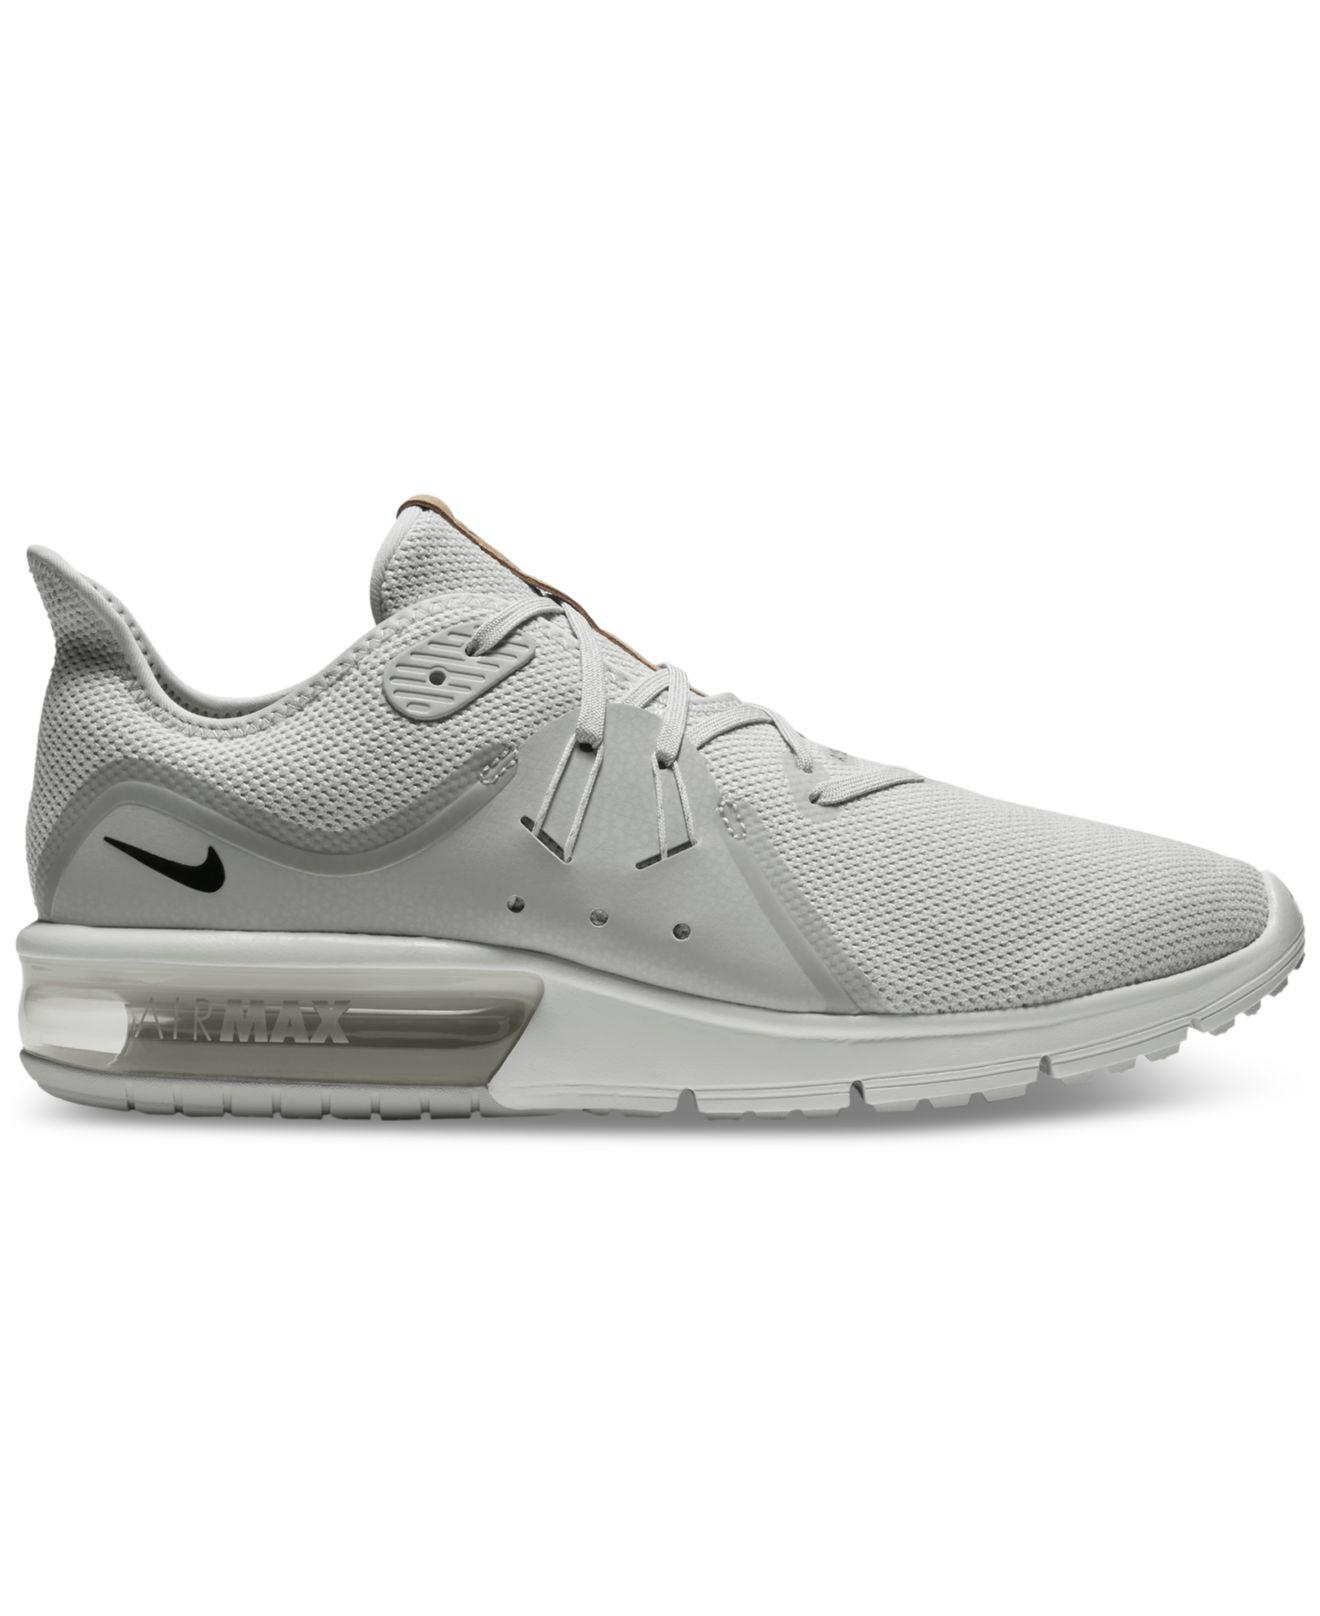 release date: 9b510 bef65 Nike Air Max Sequent 3, Chaussures de Gymnastique Homme, Or (Pure Platinum